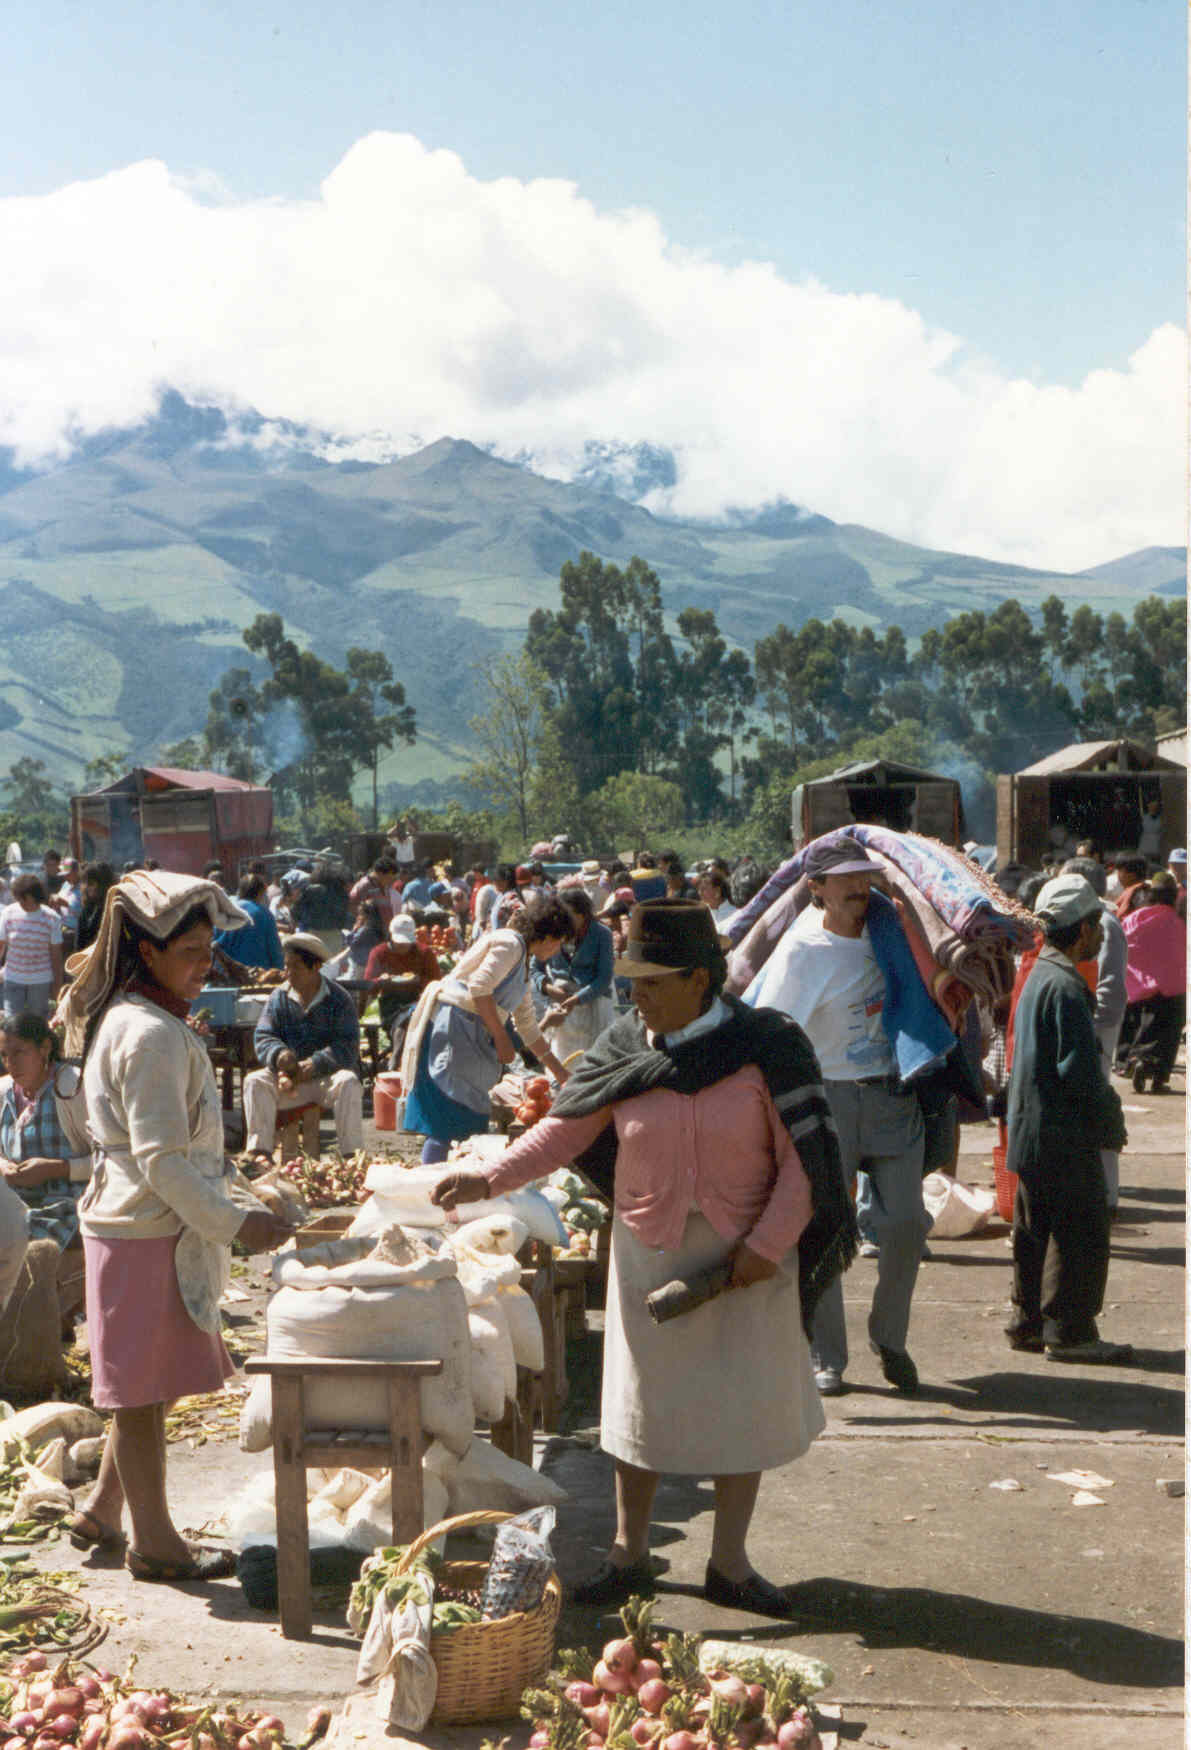 Food Market in Machachi, Ecuador (Photo by IUFRO)